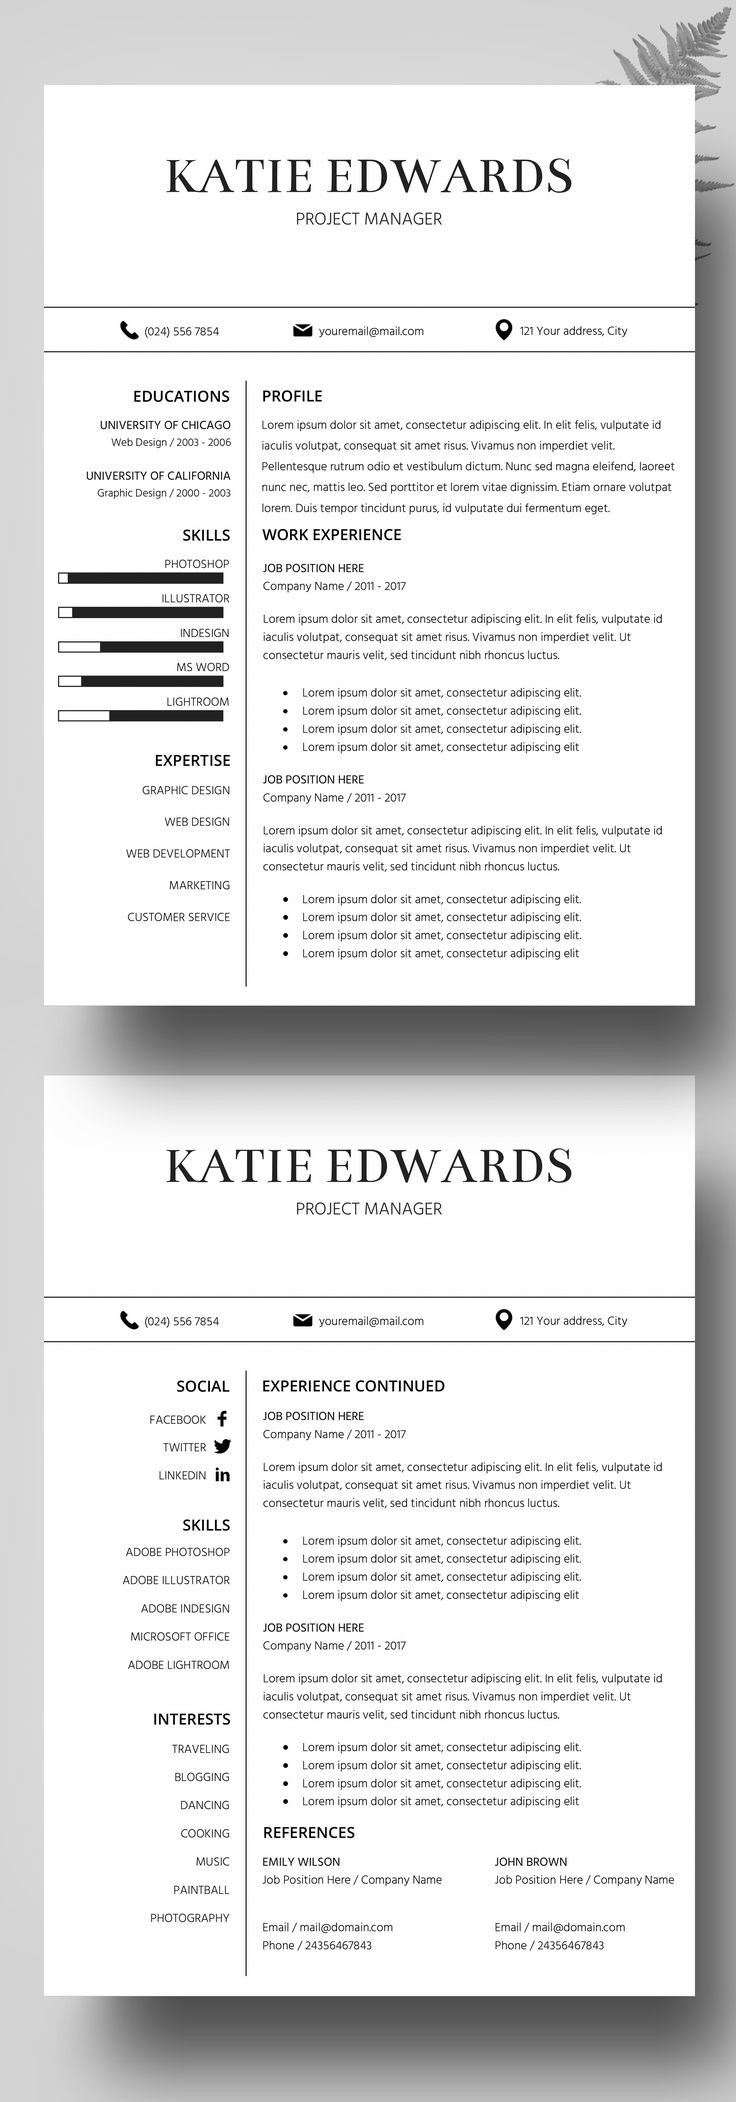 Buy Resume Templates Glamorous 46 Best Resume Templates 50% Off Special Offer Images On Pinterest